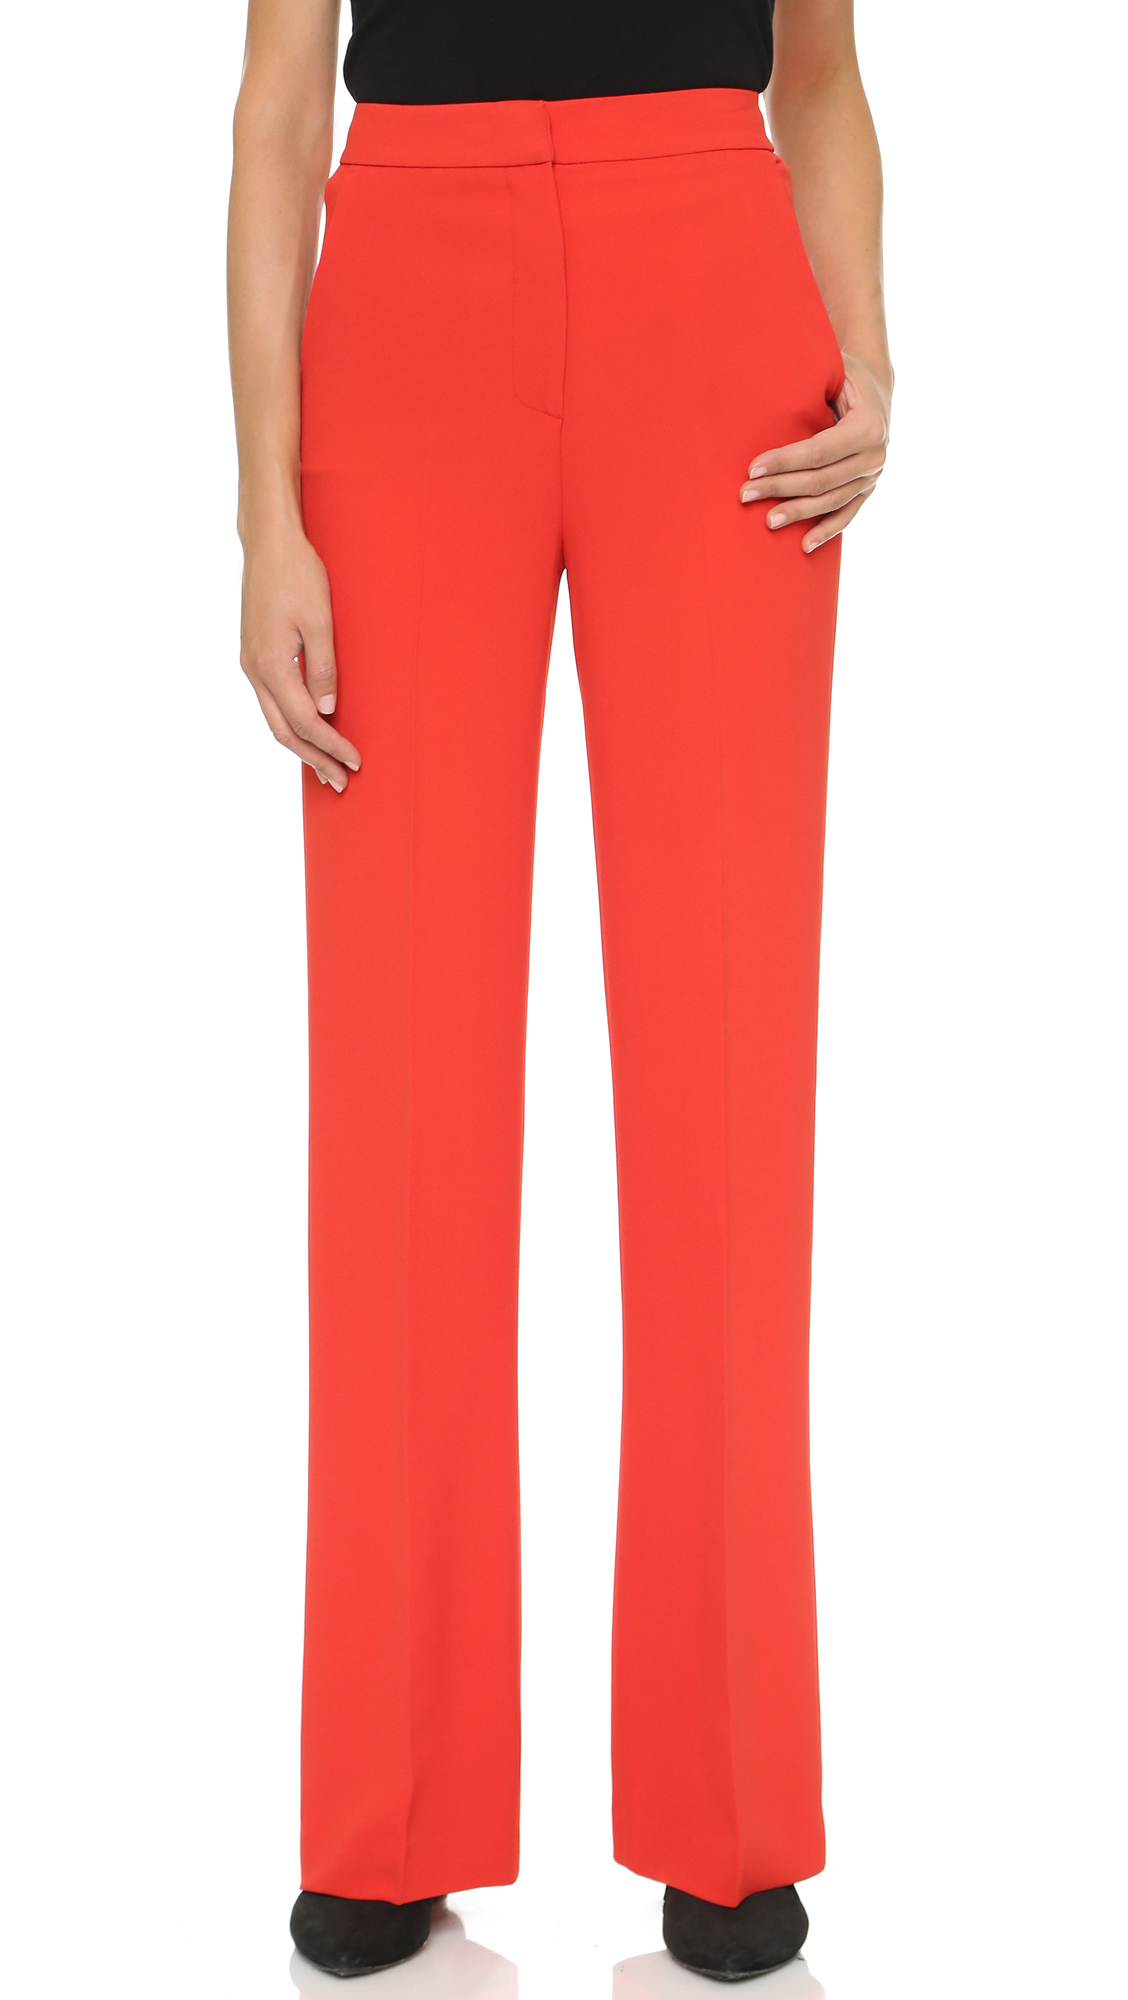 Msgm High Waisted Wide Leg Pants - Red in Red | Lyst